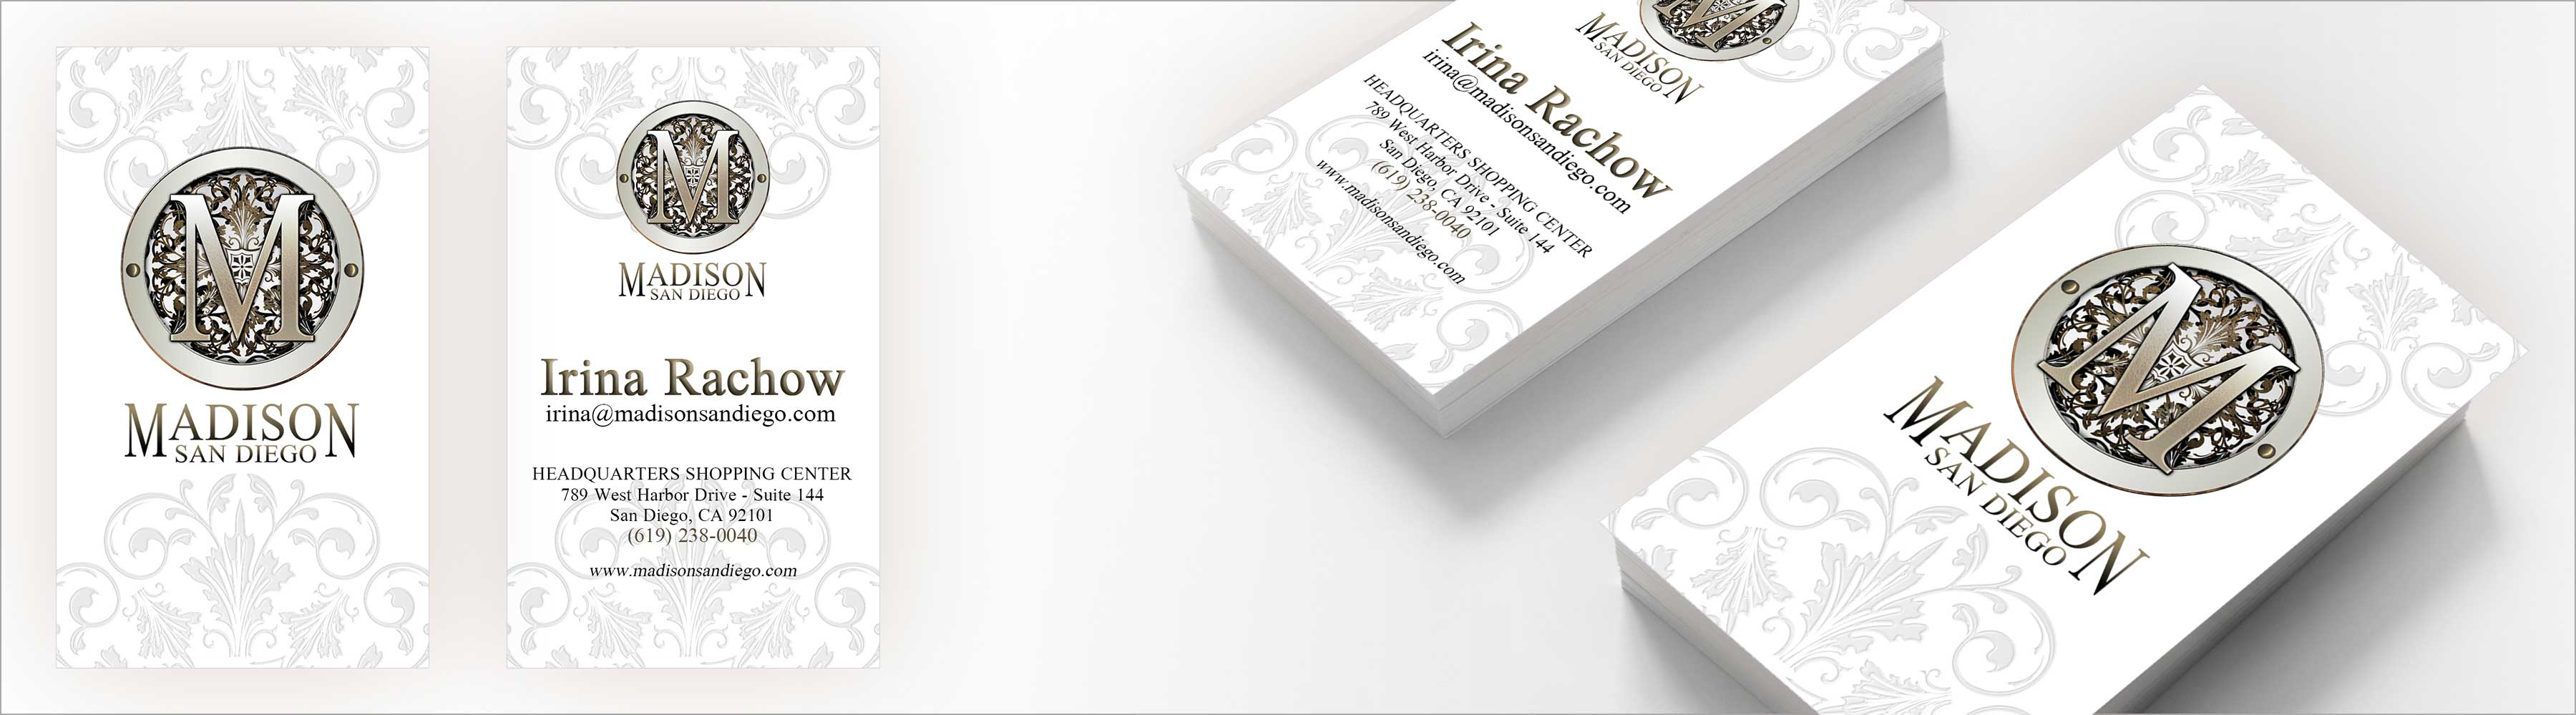 Madison San Diego Business Card Design